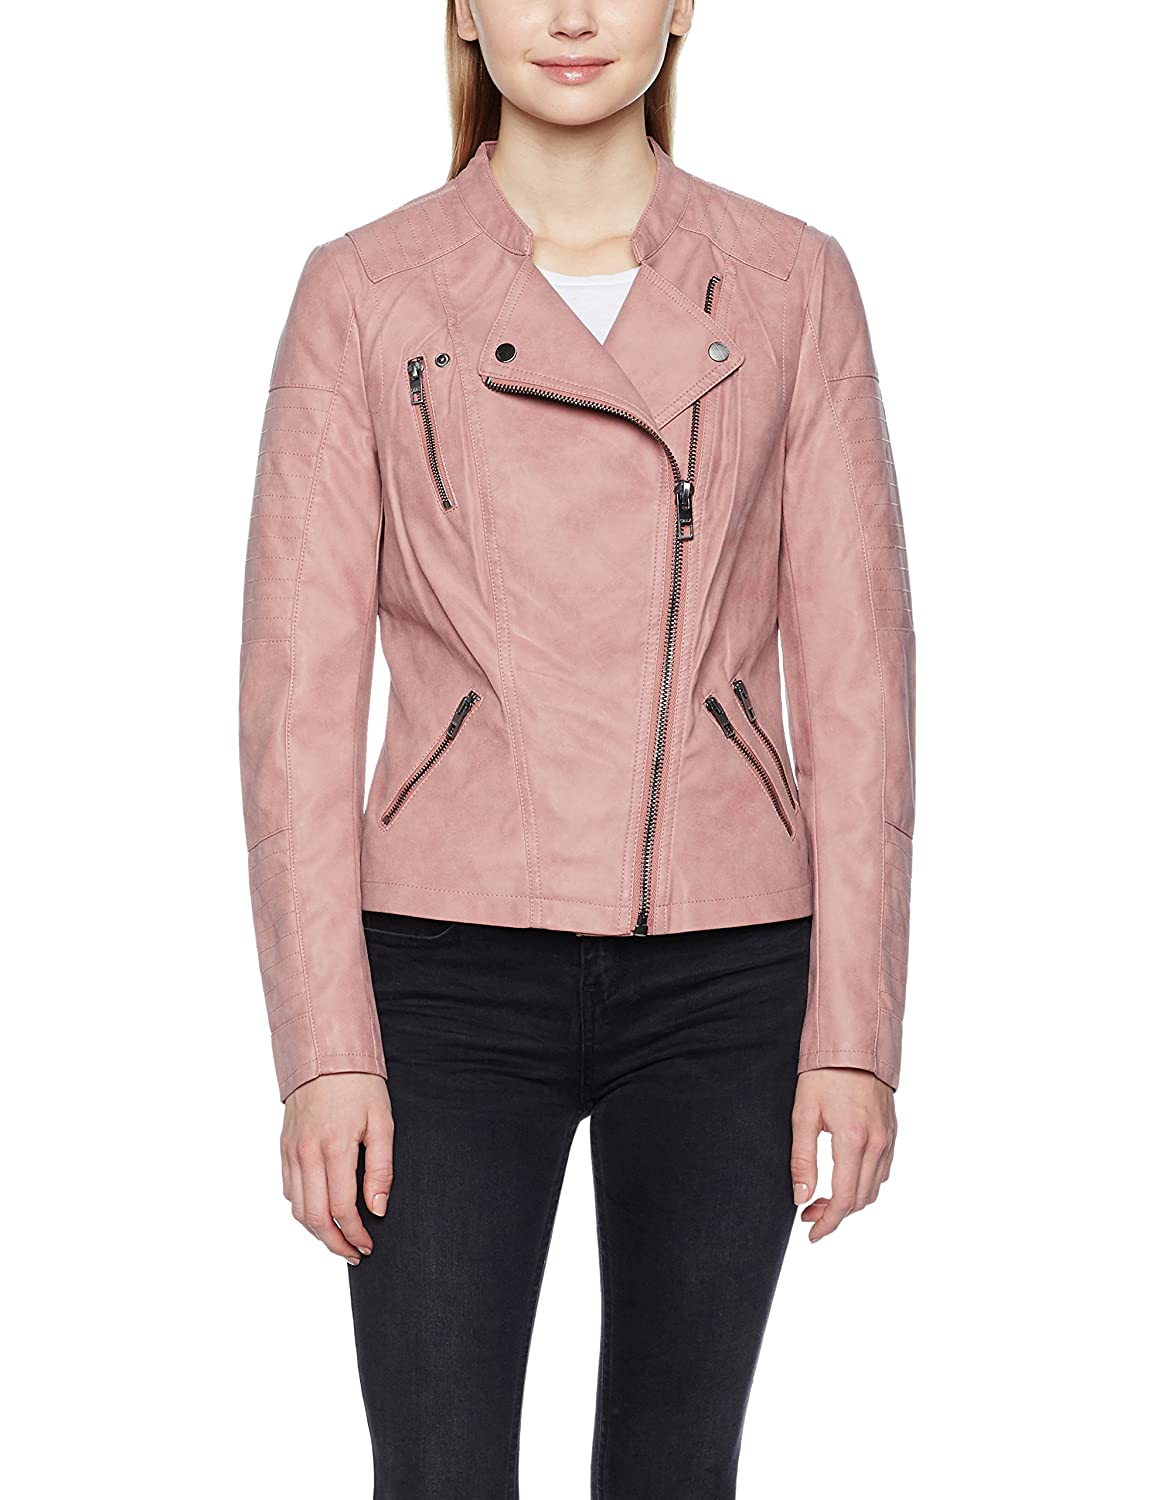 Chaqueta Color Marrón Noos Onlava Biker Otw Mujer Leather Faux Para pOHwPqgXx